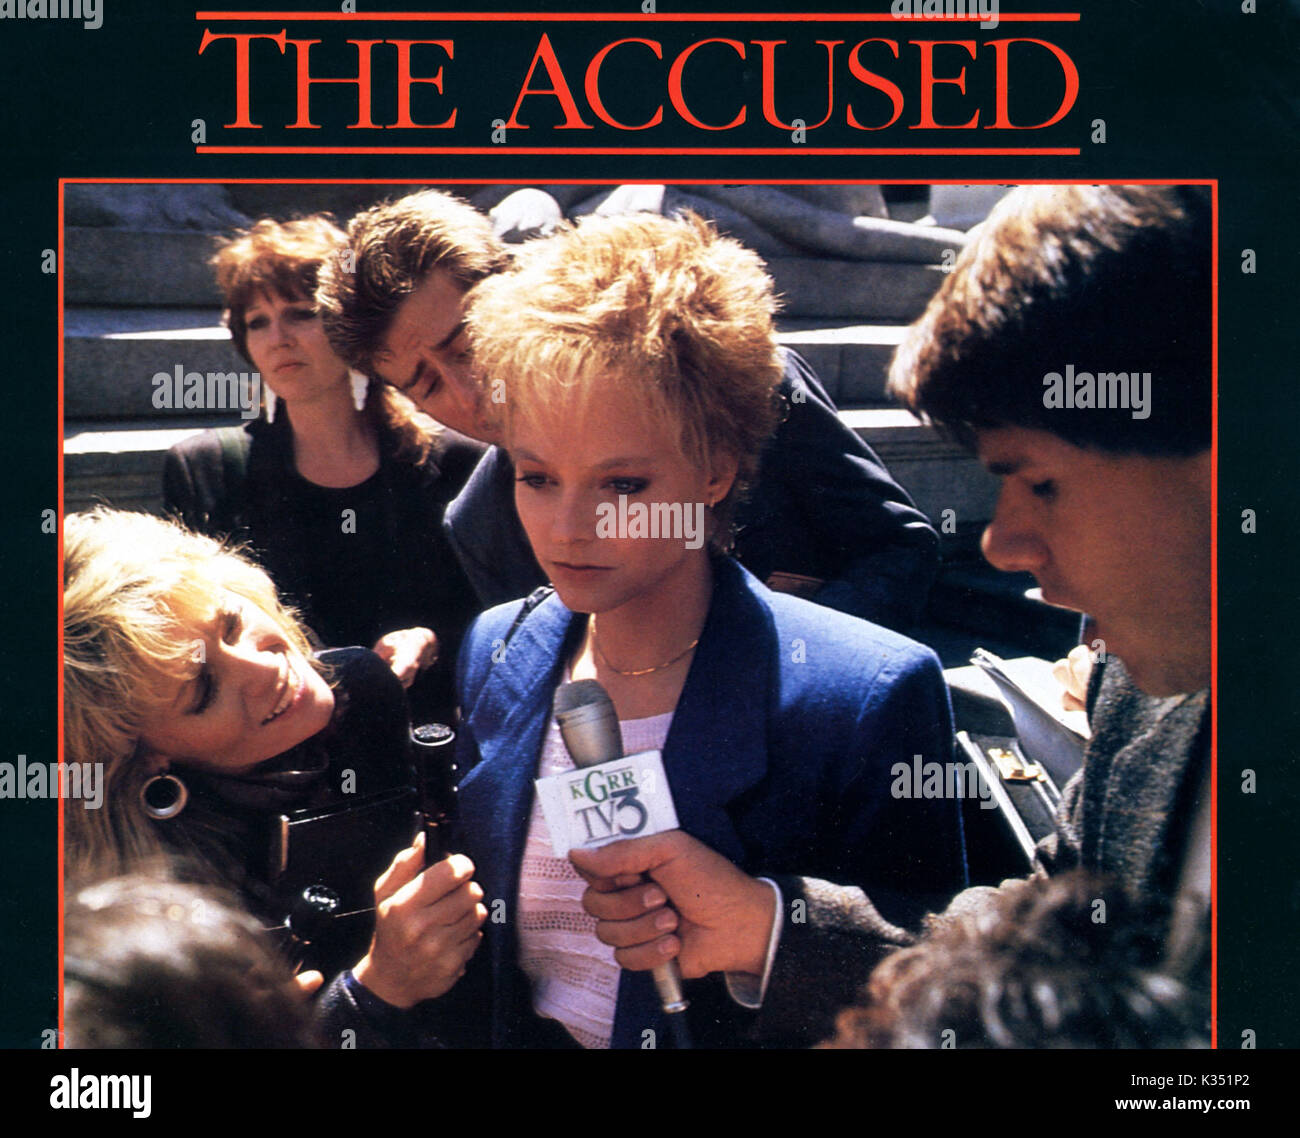 the accused stock photos the accused stock images alamy the accused jodie foster date 1988 stock image